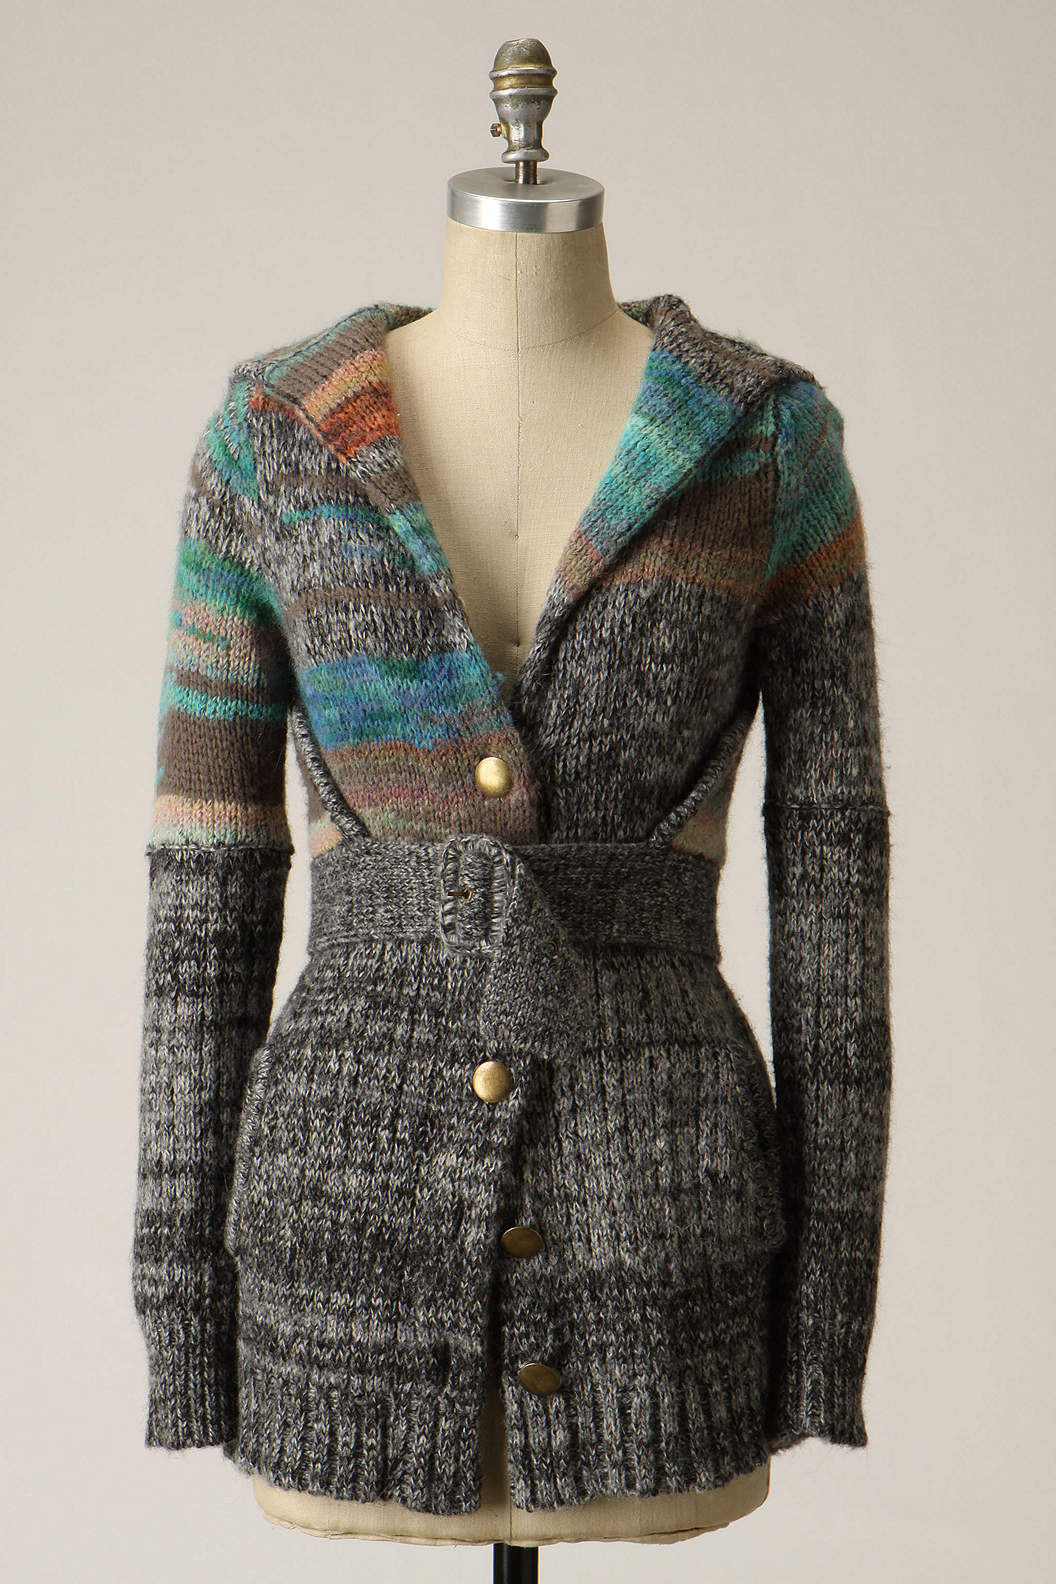 Colorfield Cardigan